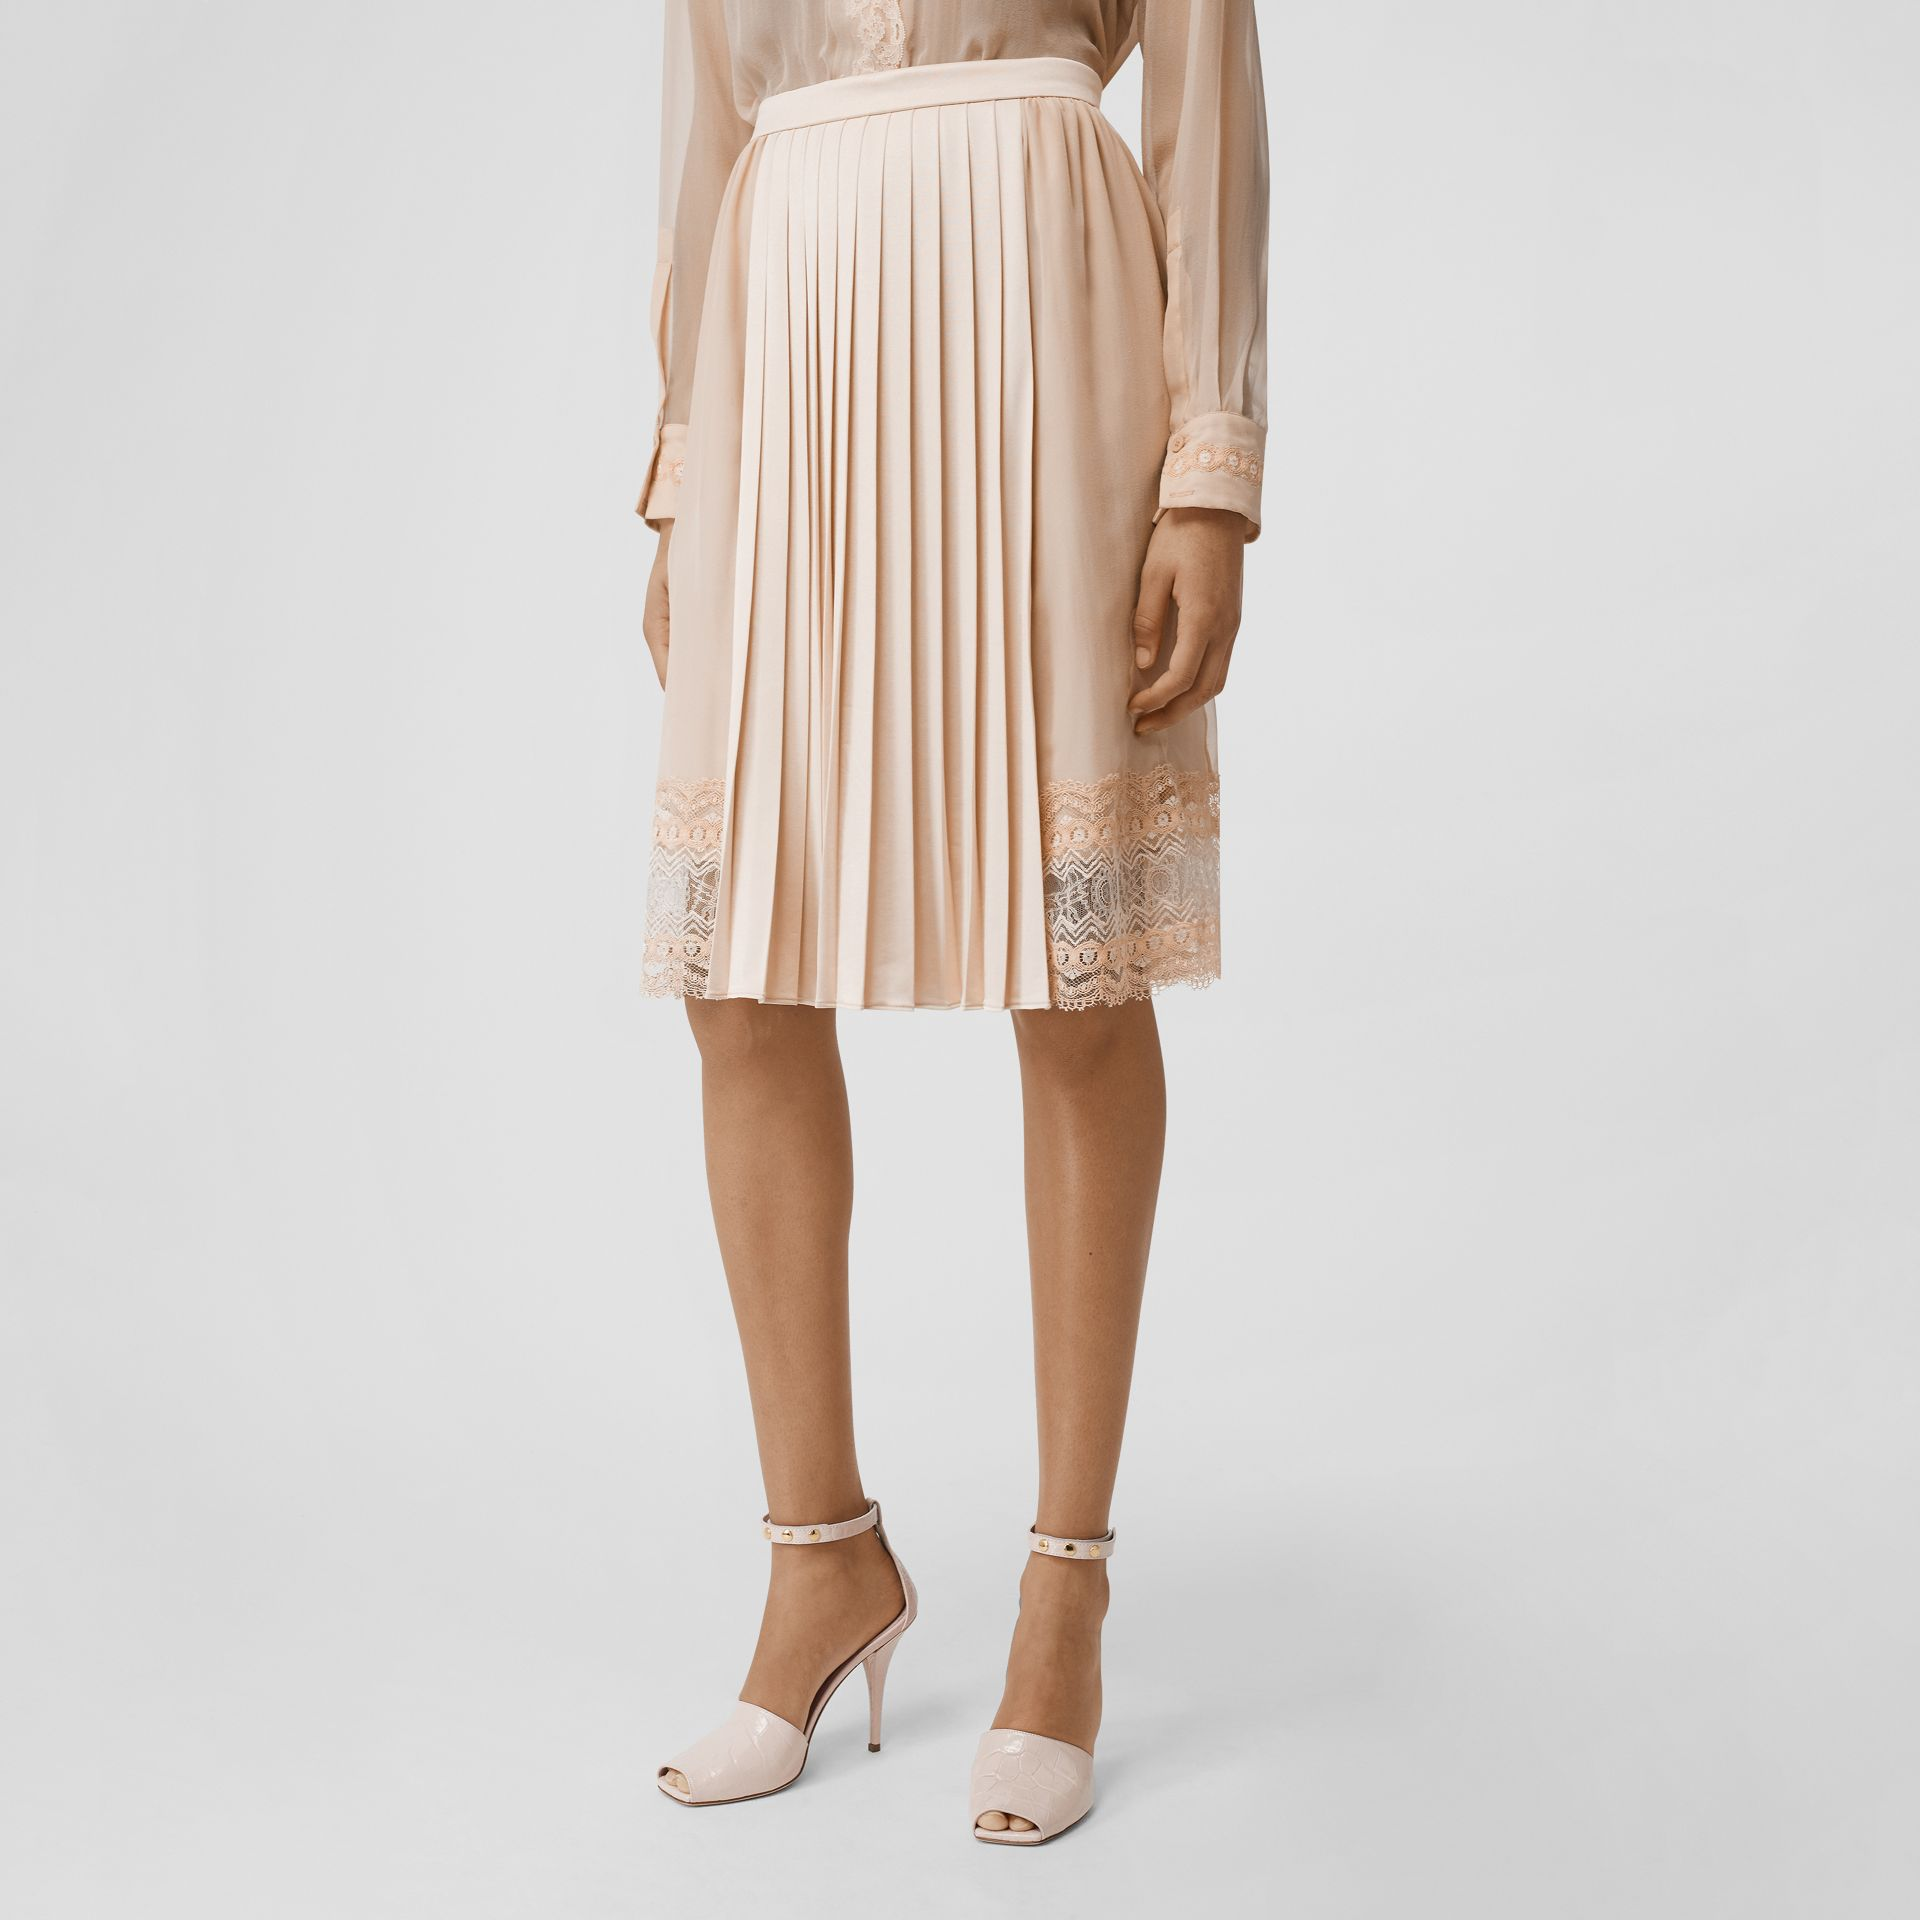 Lace Detail Silk Panel Pleated Skirt in Soft Peach - Women | Burberry Canada - gallery image 2